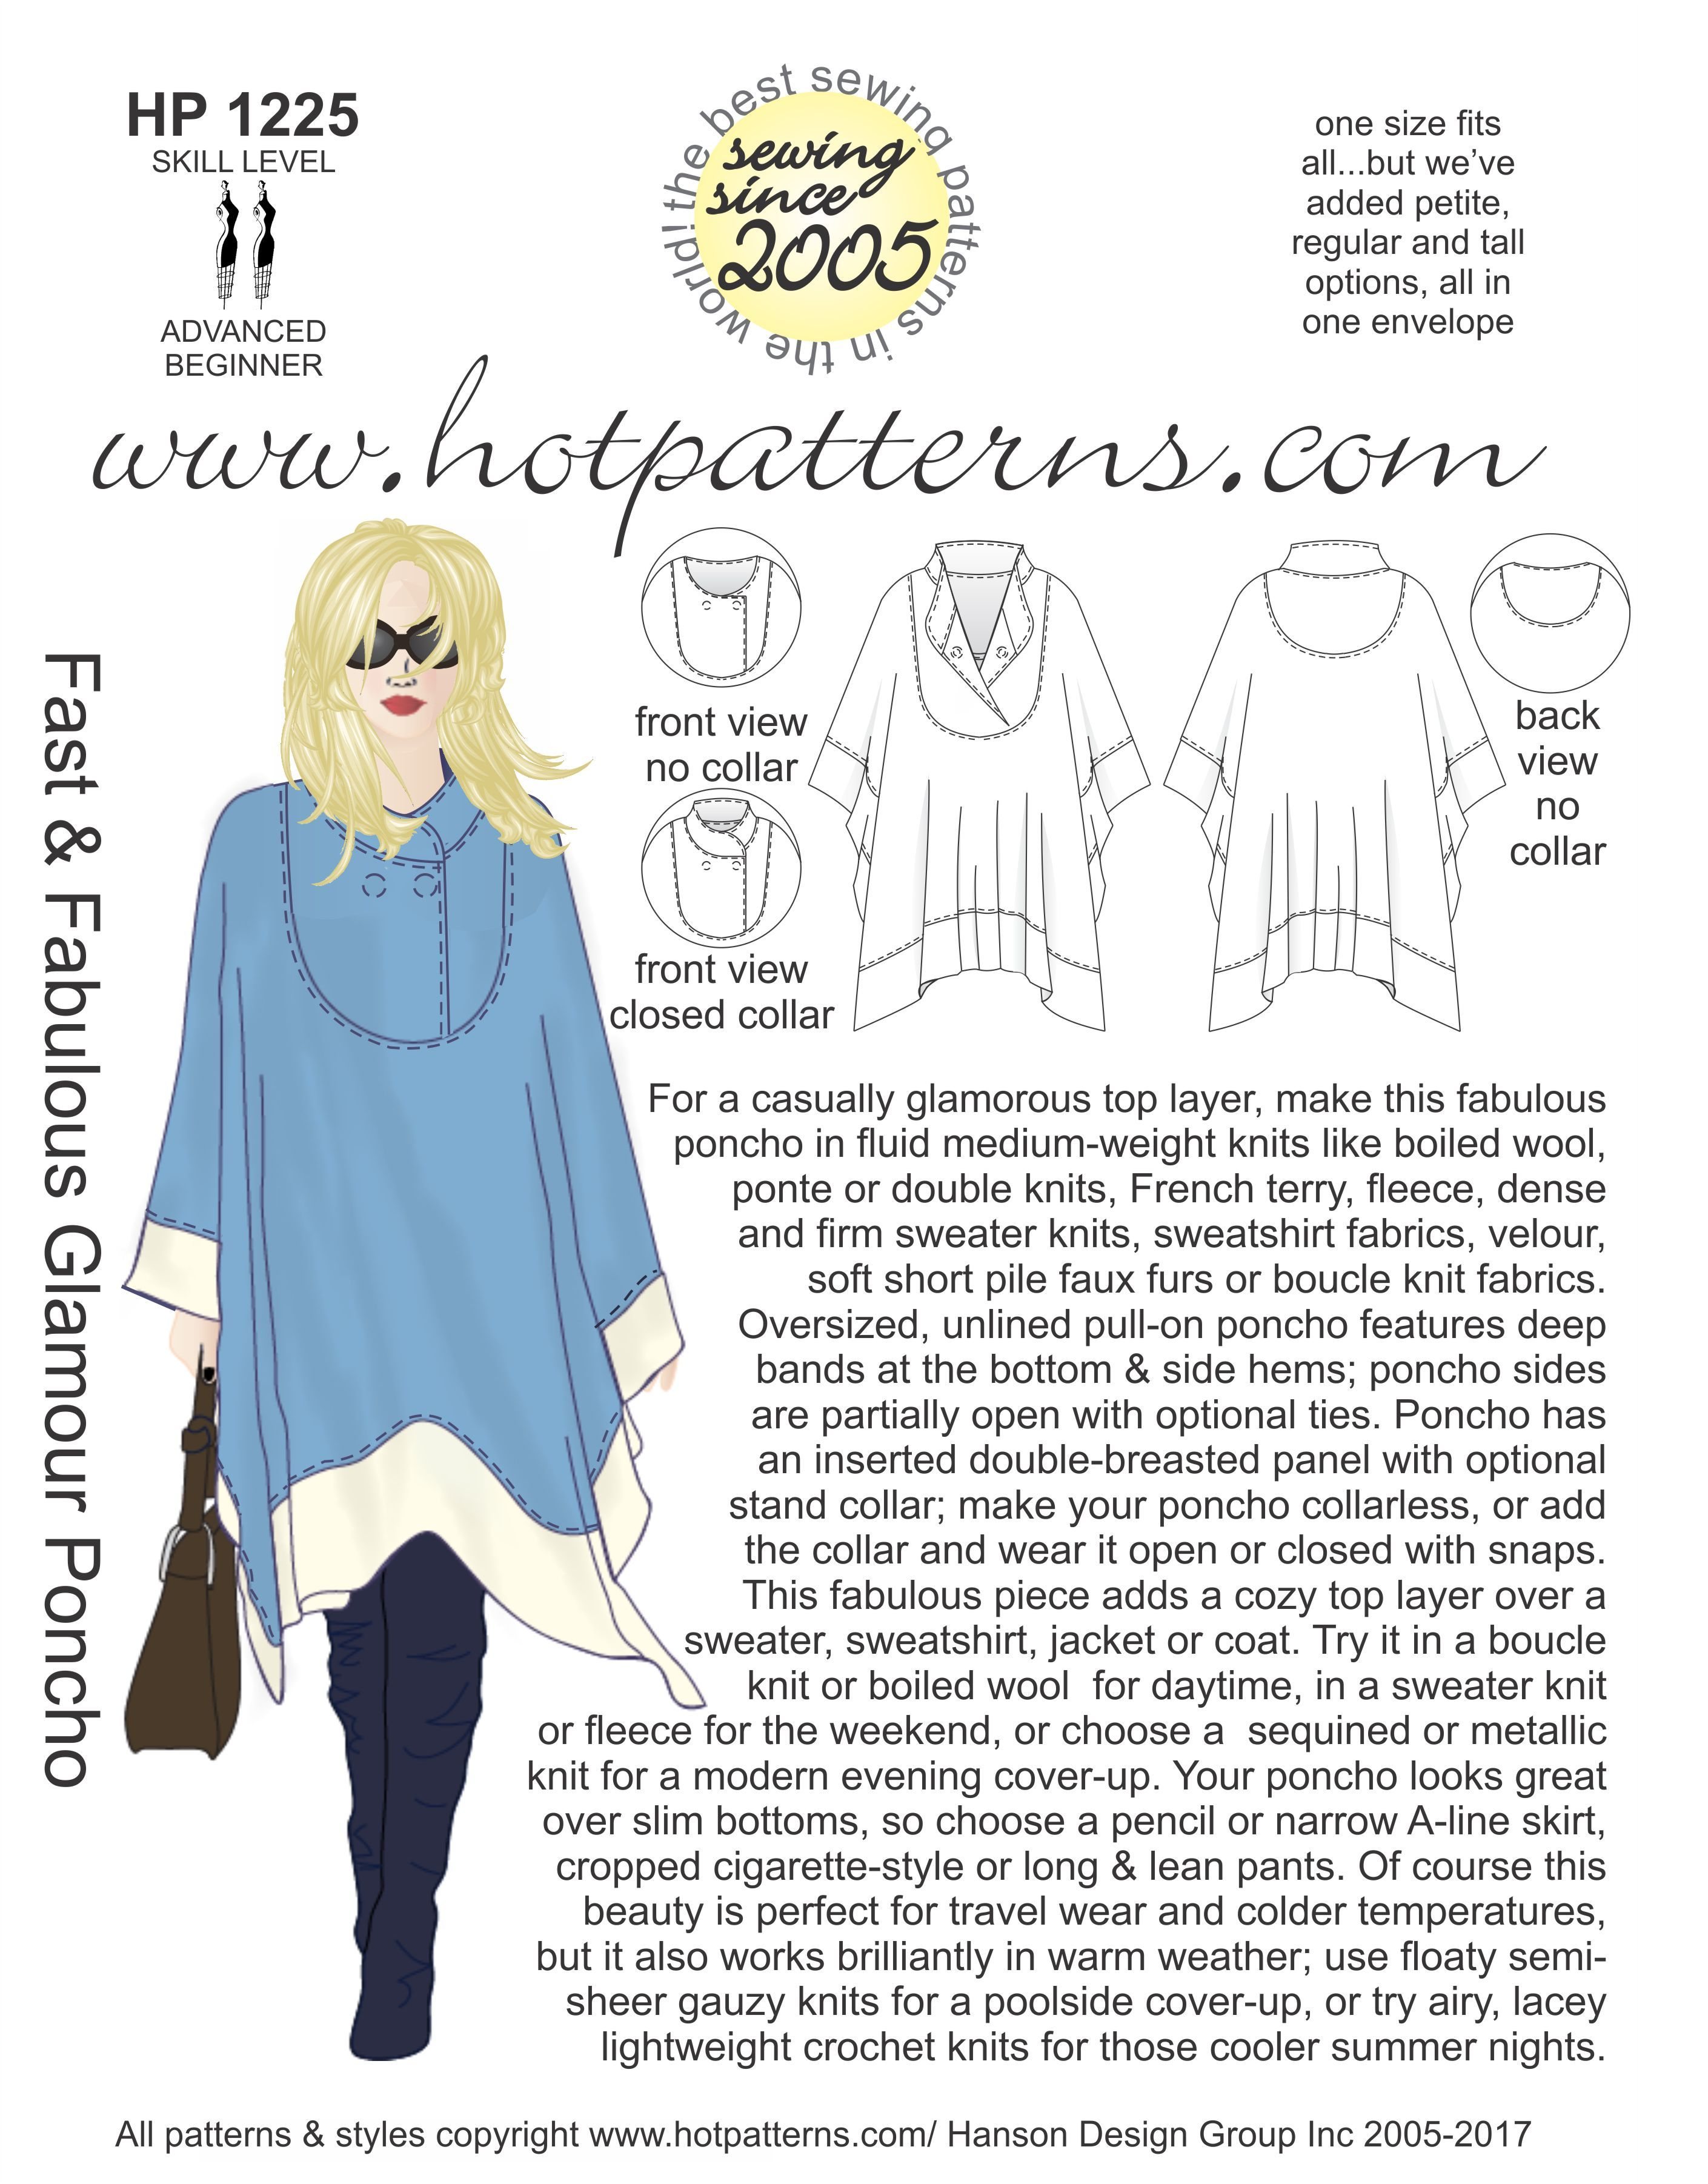 HP 1225 Fast & Fabulous Glamour Poncho | DIY {CLOTHES} | Pinterest ...